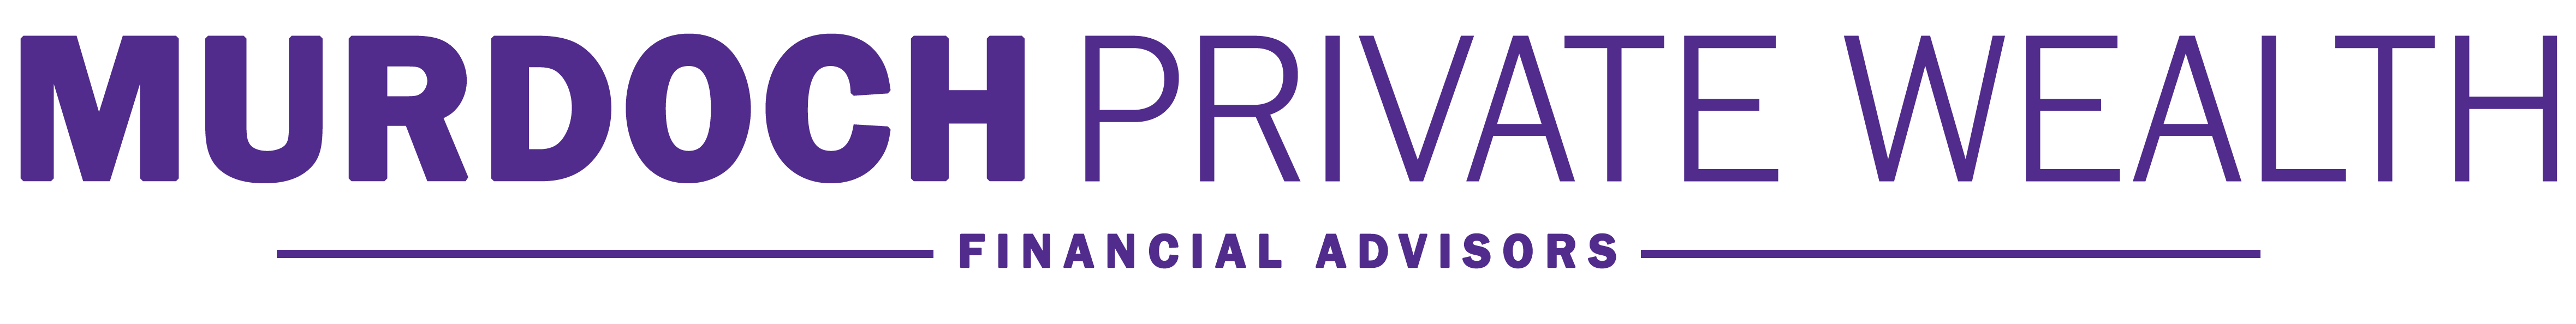 Murdoch Private Wealth Logo